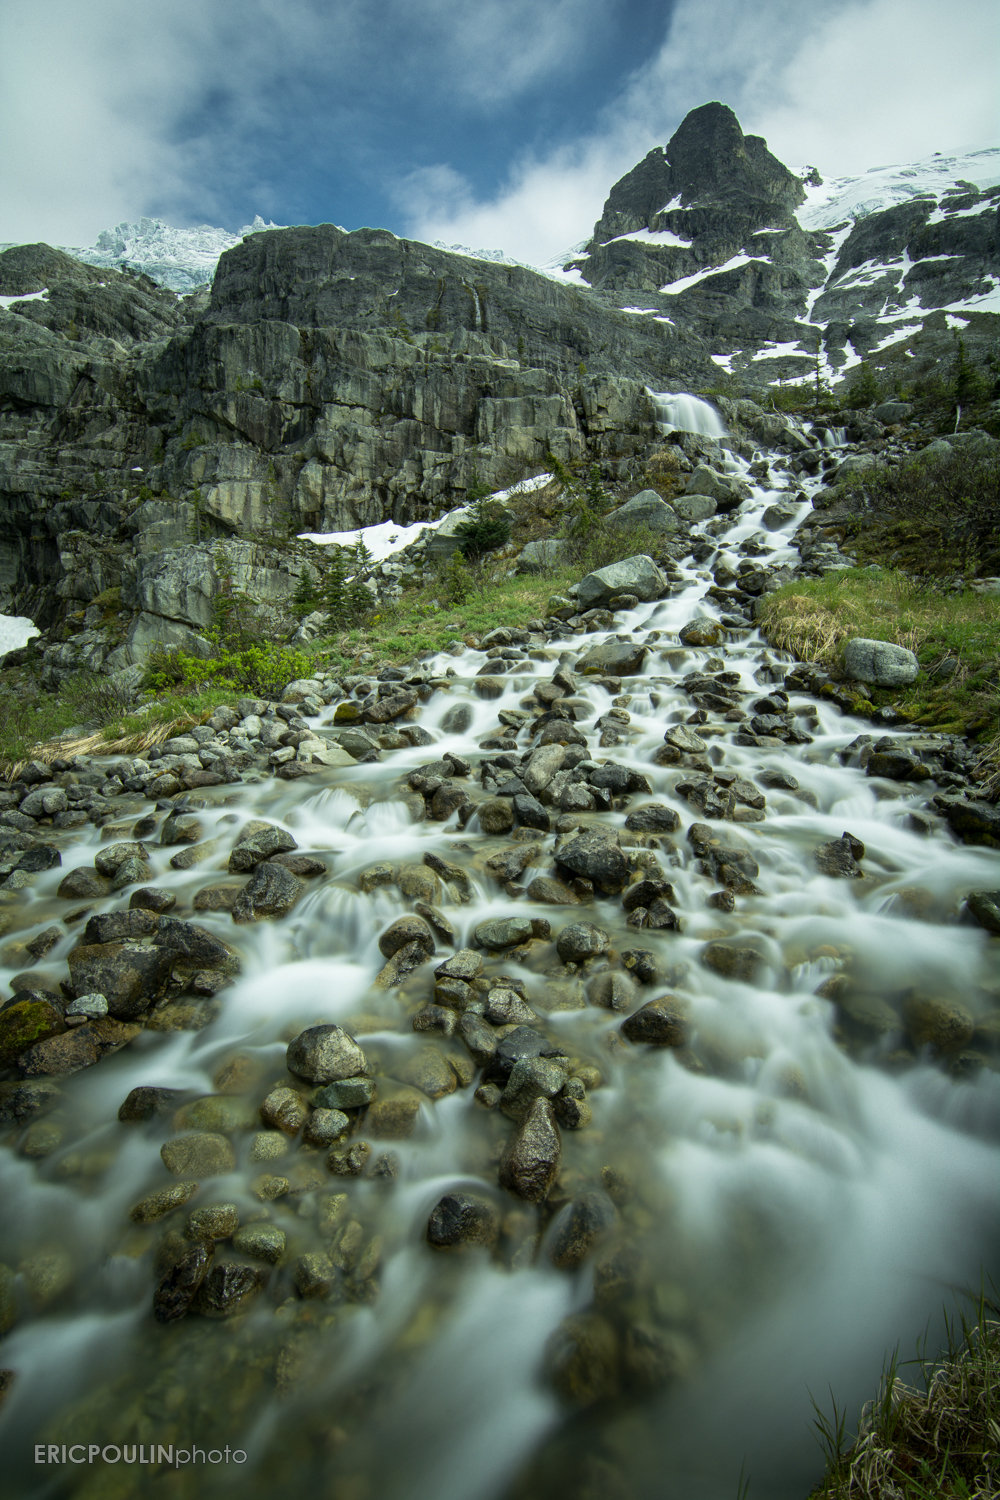 Beautiful glacial streams feeding into the lakes, taken with a 10-stop ND filter